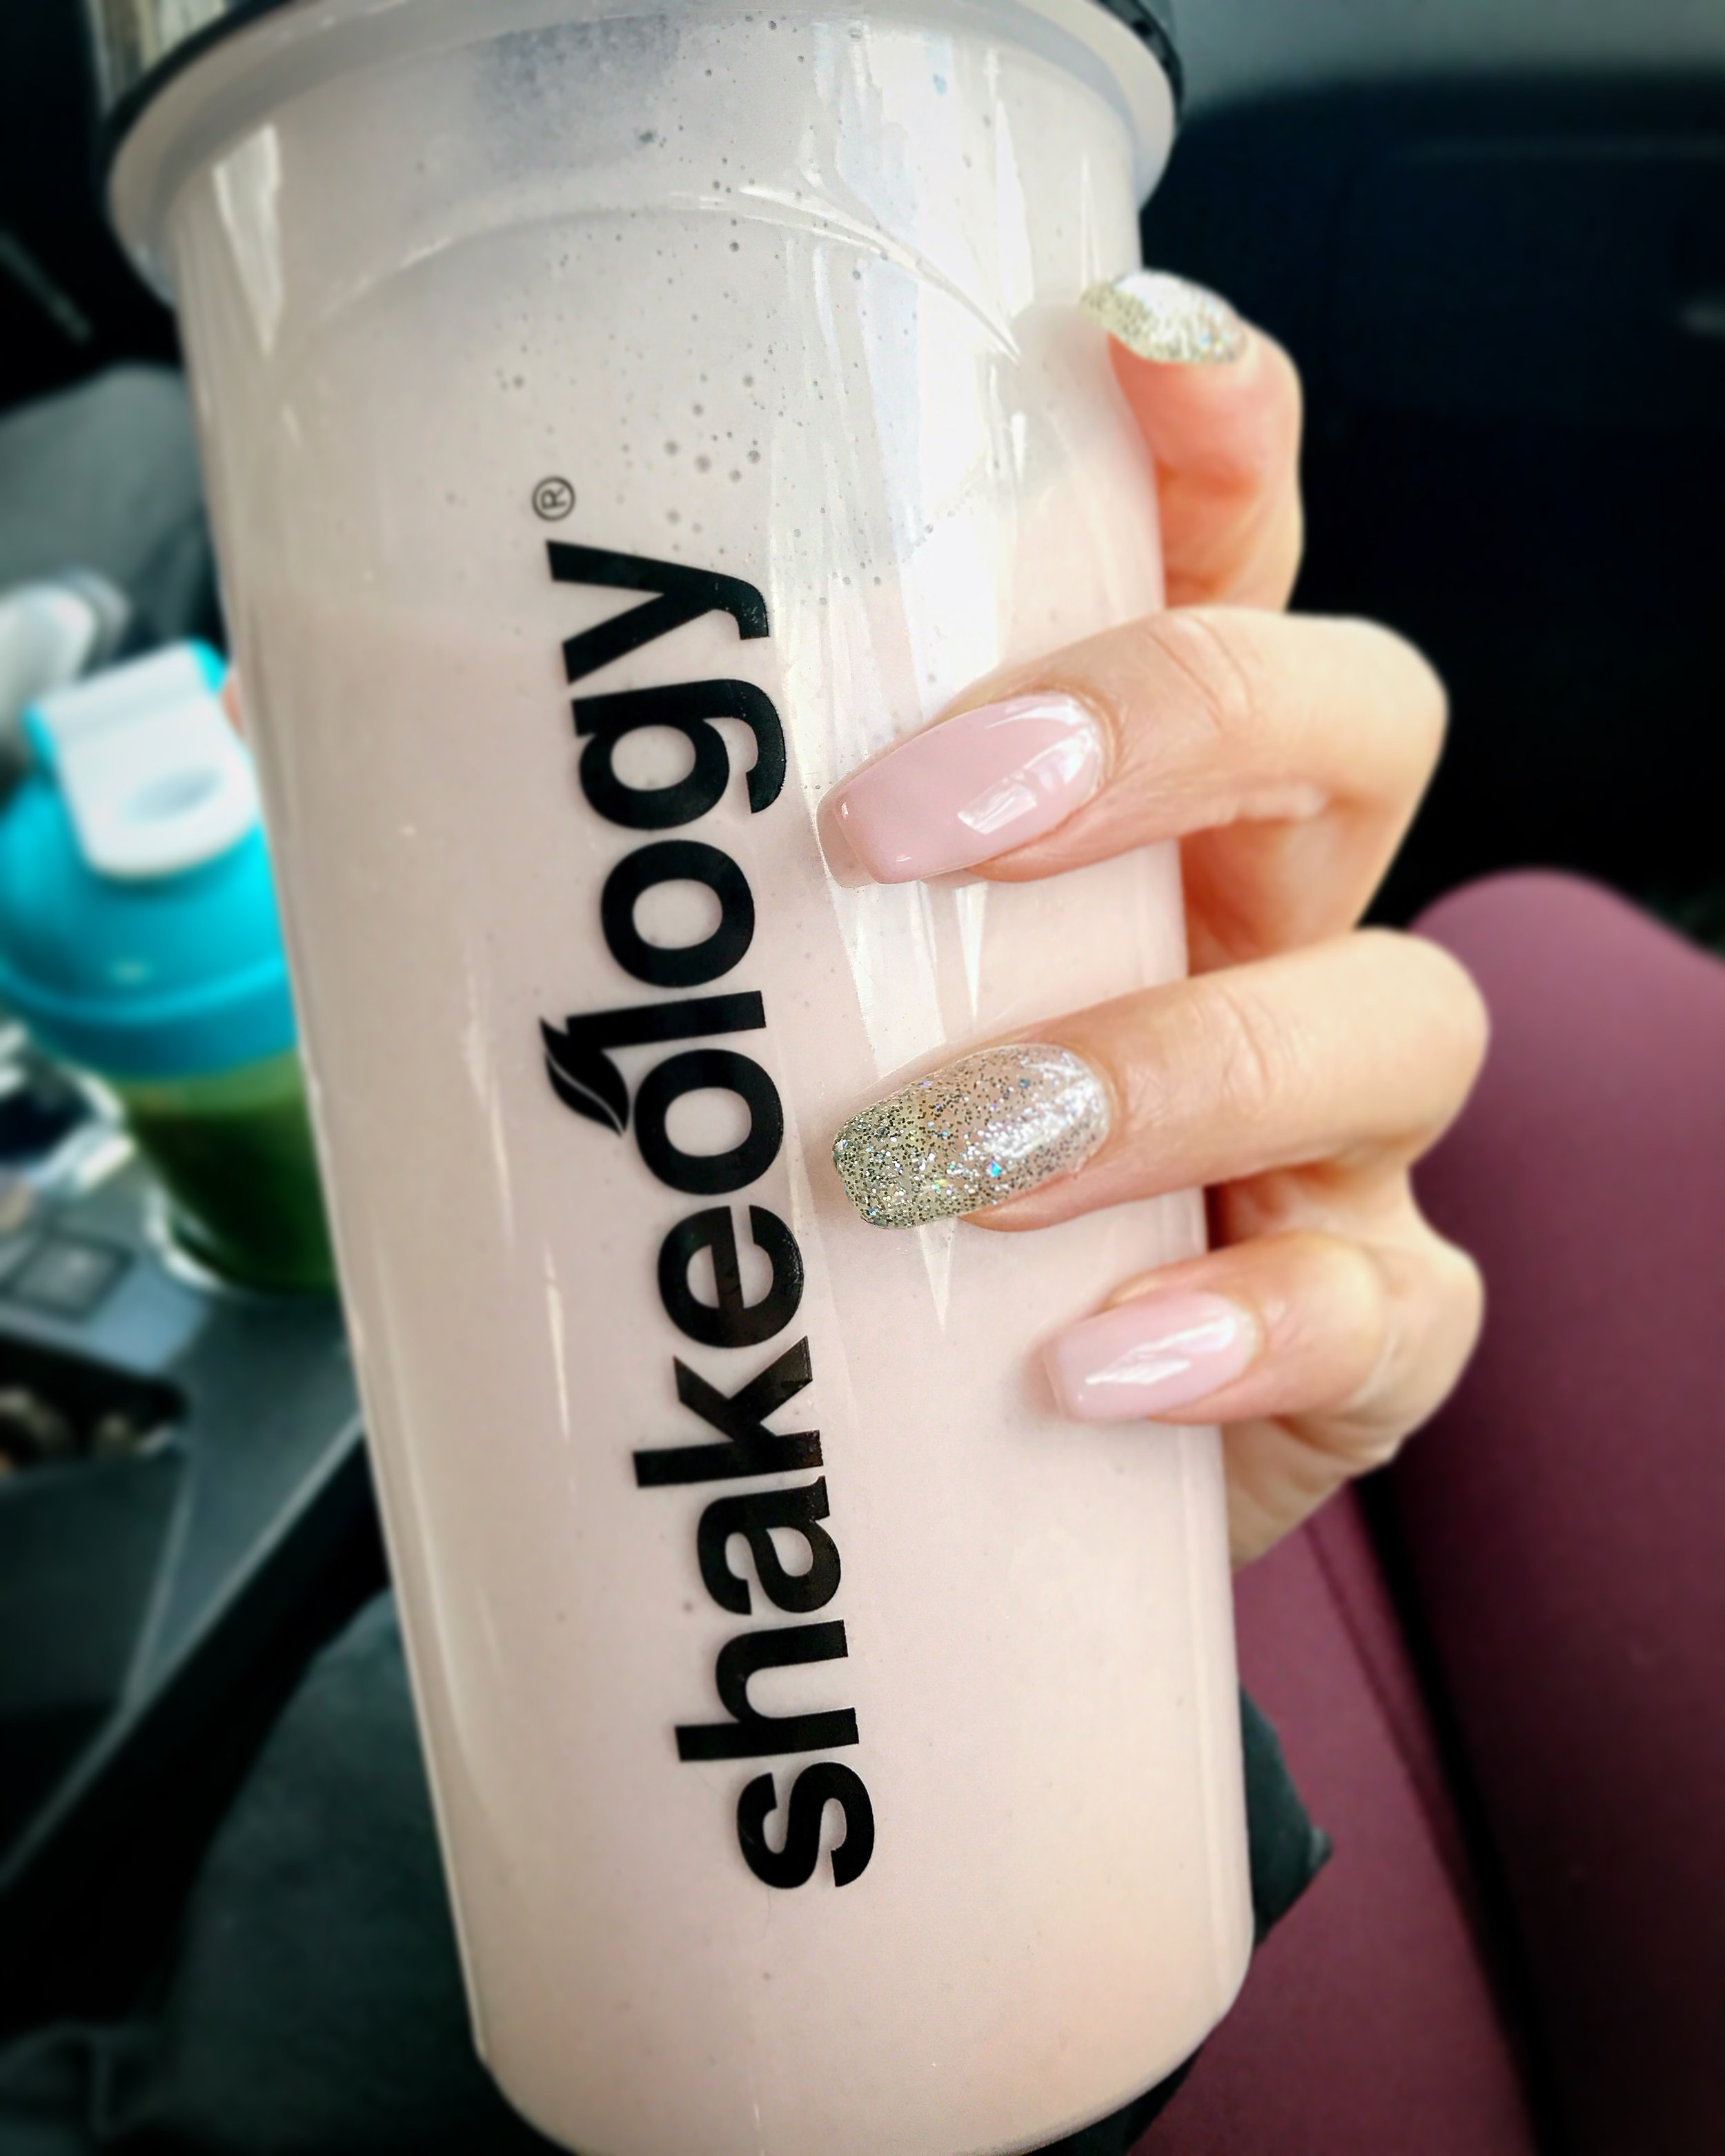 Simply blend Shakeology Strawberry, water, and ice! Makes a perfect sweet treat!